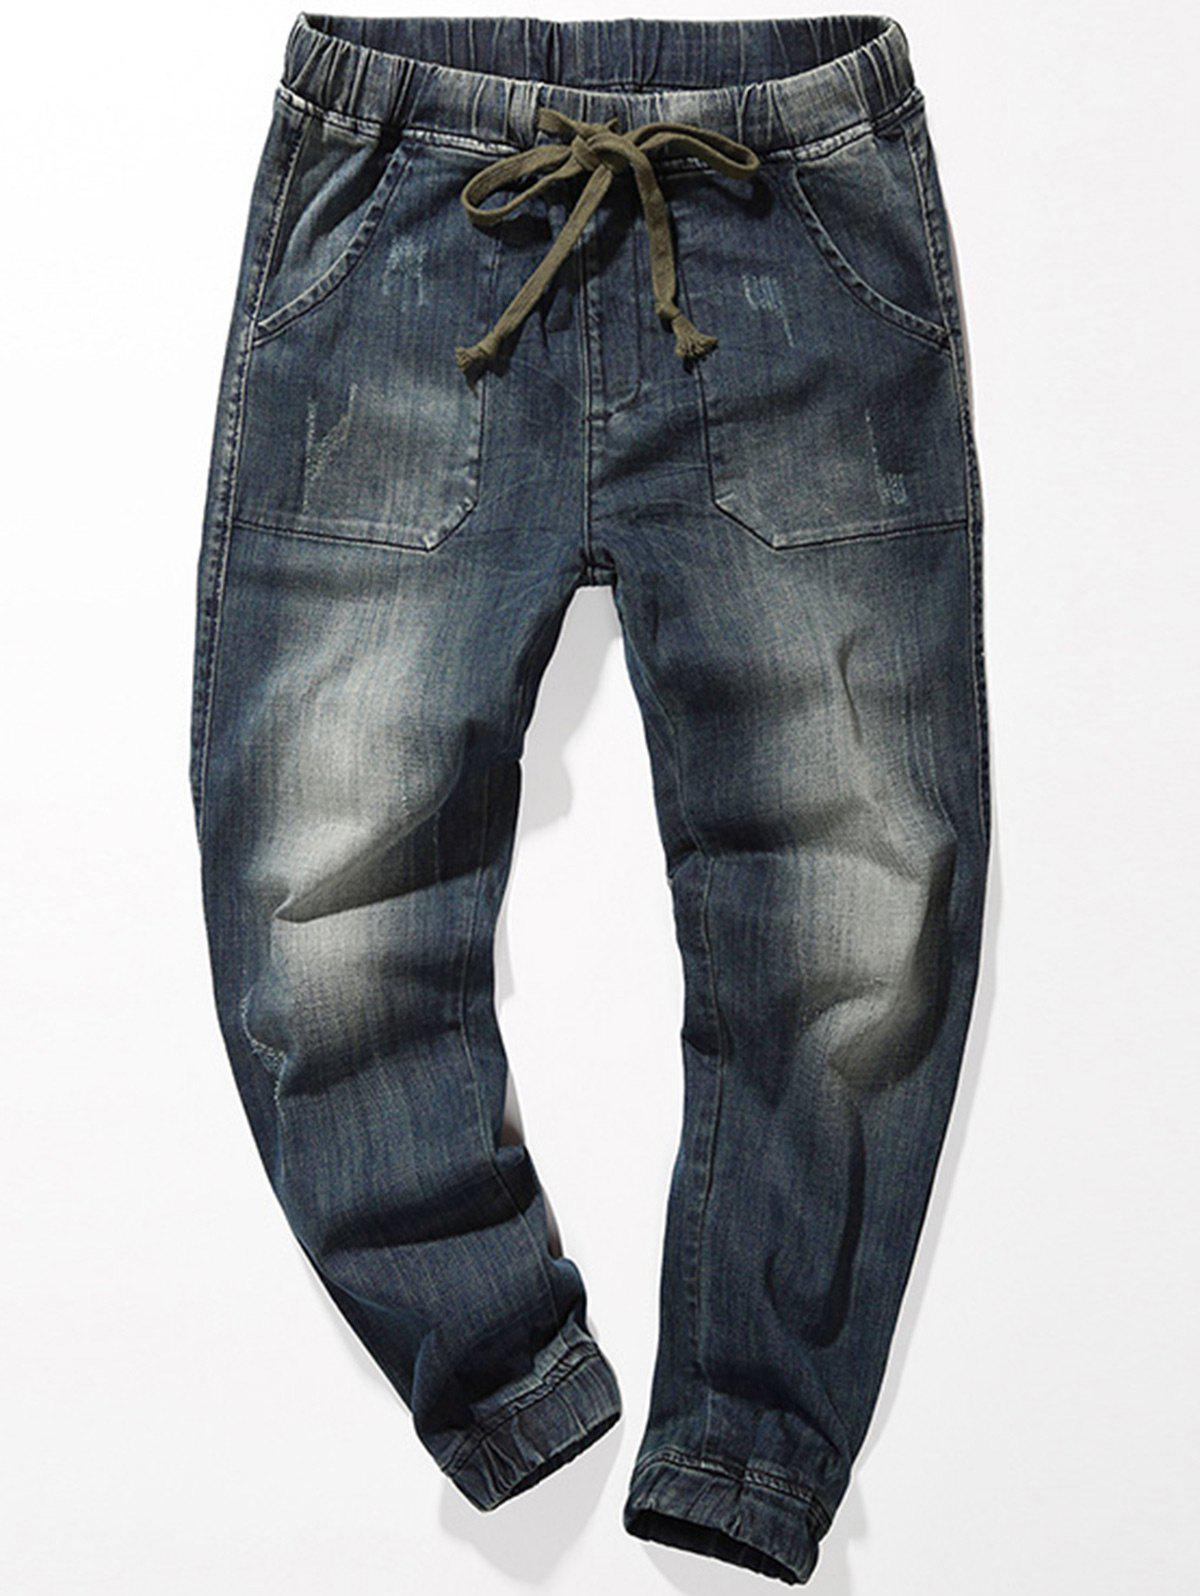 Drawstring Denim Jogger JeansMEN<br><br>Size: 34; Color: BLUE; Material: Cotton,Jean,Spandex; Pant Length: Long Pants; Fabric Type: Denim; Wash: Dark; Fit Type: Straight; Waist Type: Mid; Closure Type: Drawstring; Weight: 0.6000kg; Pant Style: Straight; Package Contents: 1 x Jeans; With Belt: No;